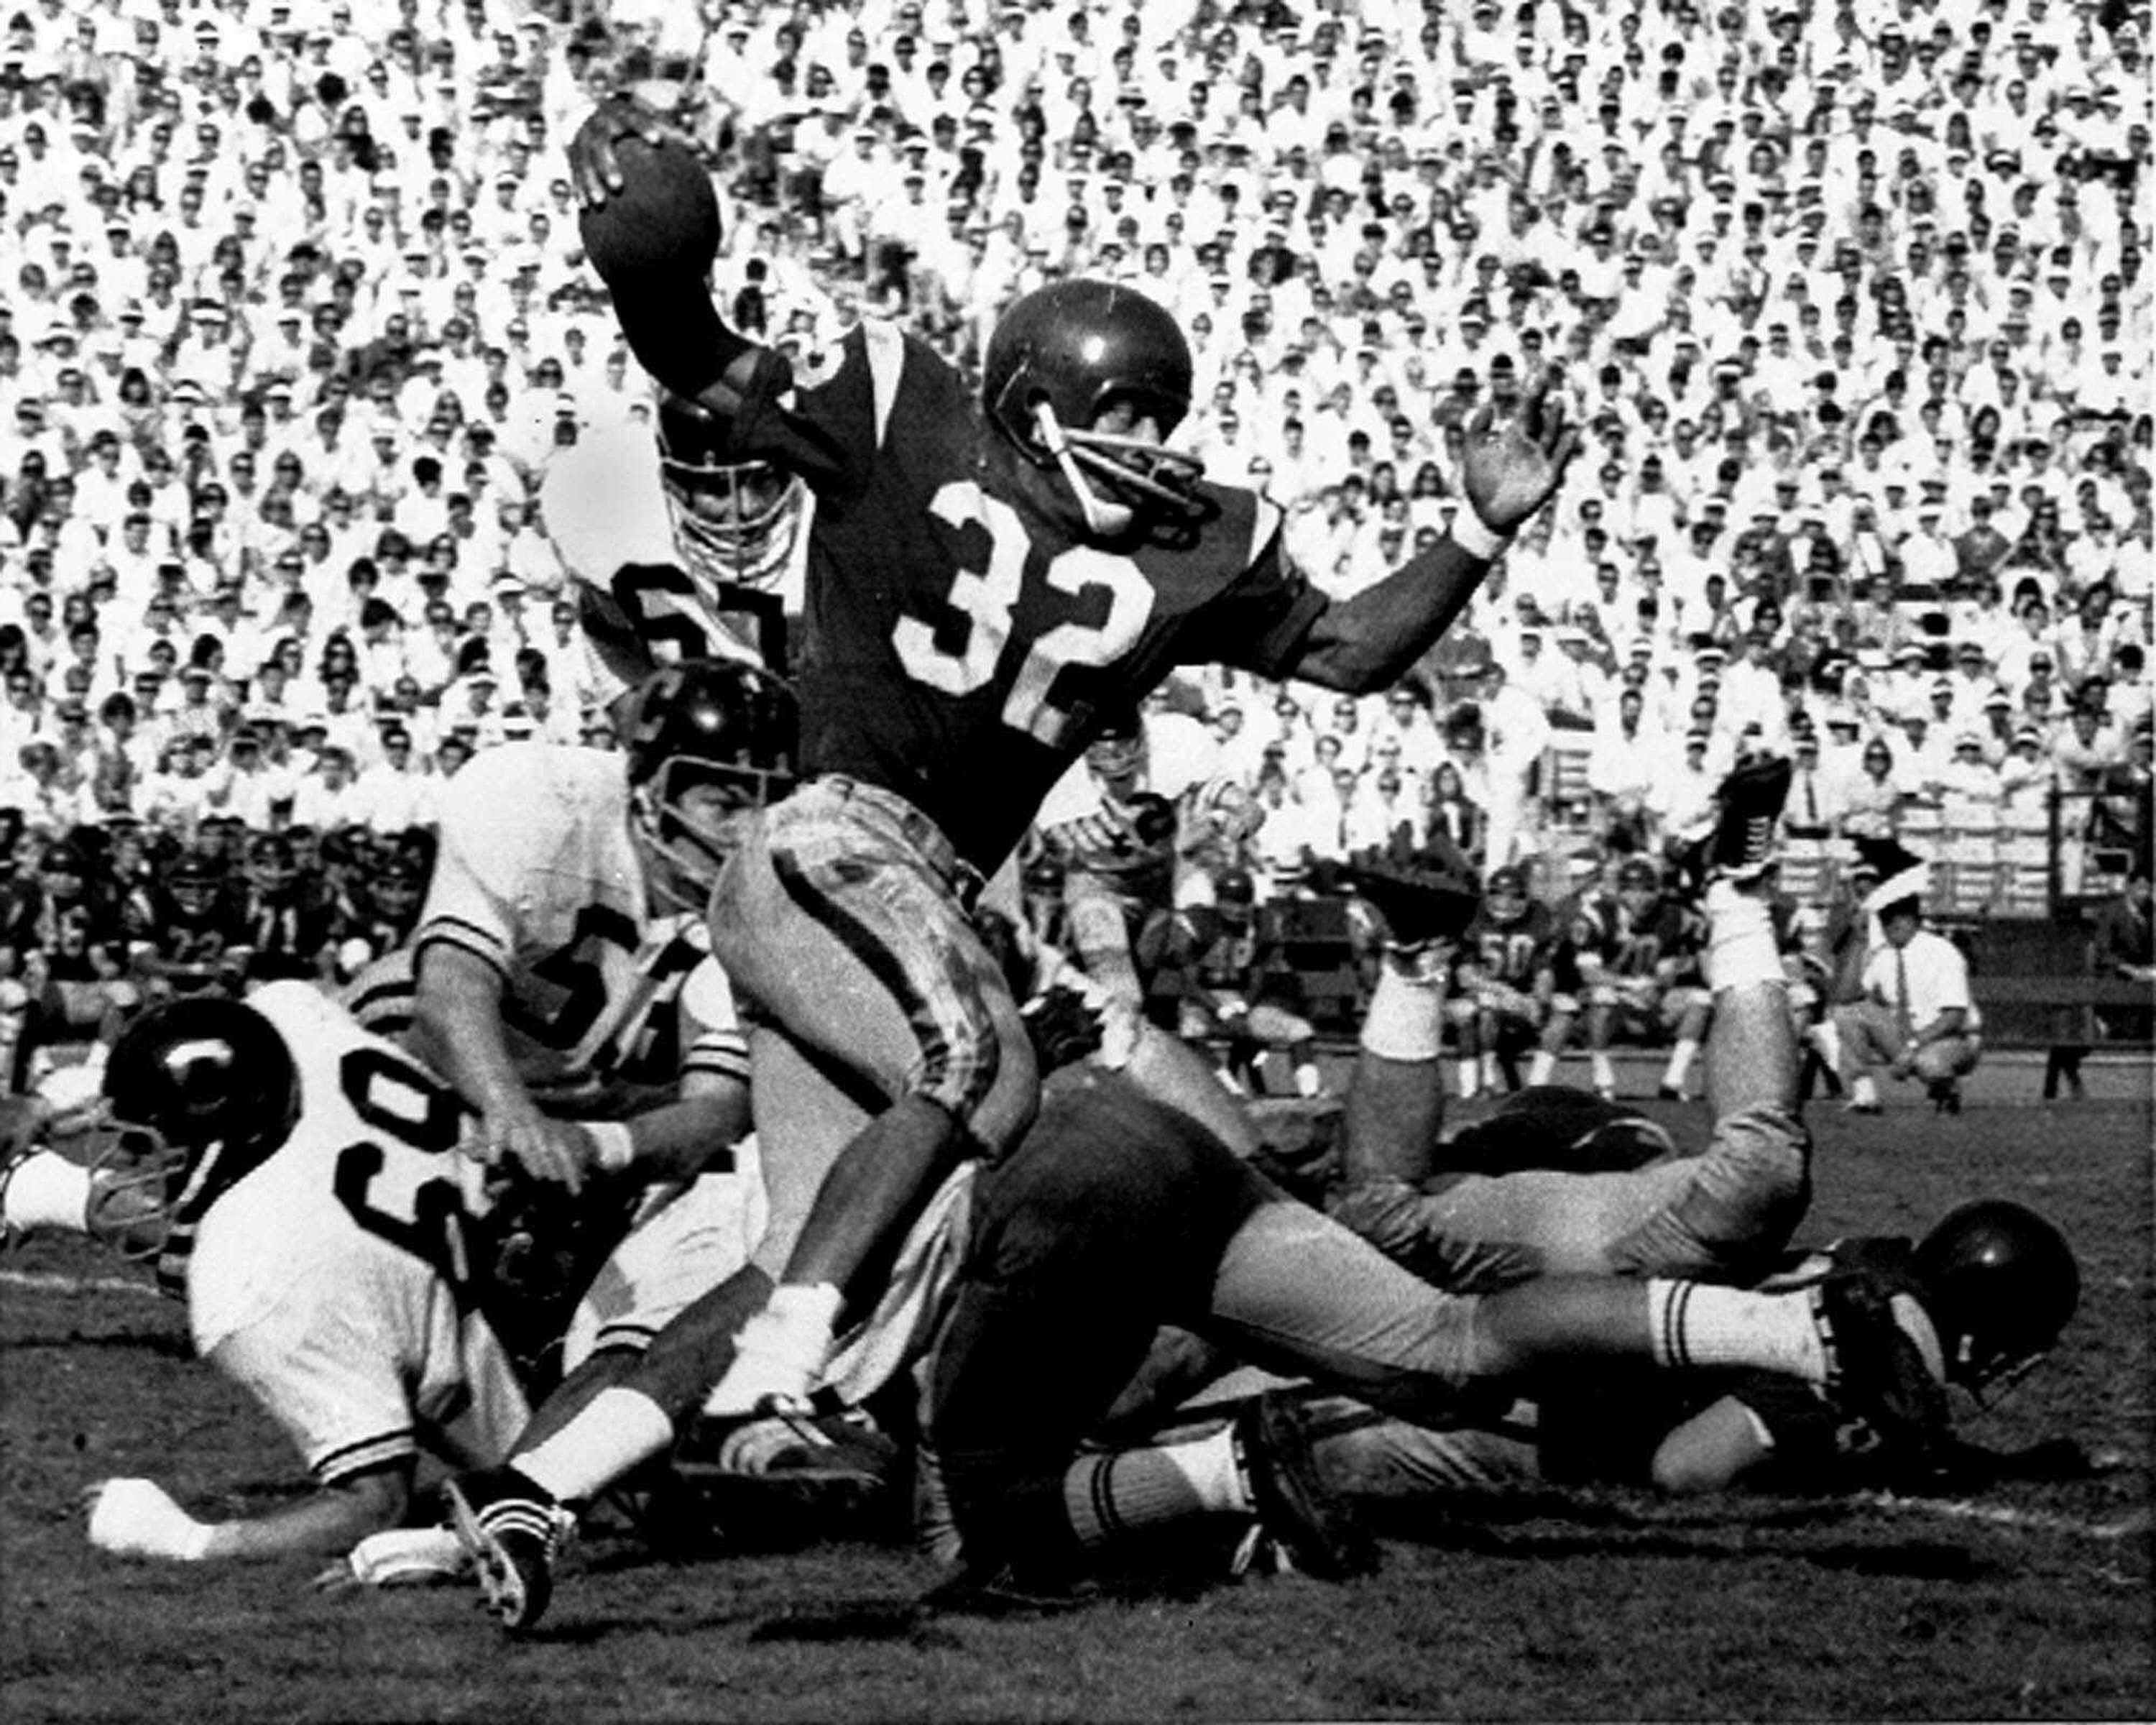 FILE - In this Nov. 9, 1968 file photo, Southern California's O.J. Simpson (32) runs against California during a college football game in Los Angeles. Simpson won the Heisman Trophy at Southern California in 1968. Simpson will have a lot going for him when he asks state parole board members Thursday, July 20, 2017, to release him after serving more than eight years for an ill-fated bid to retrieve sports memorabilia. A Nevada prison official said early Sunday, Oct. 1, 2017, O.J. Simpson, the former football legend and Hollywood star, has been released from a Nevada prison in Lovelock after serving nine years for armed robbery. (AP Photo/HF, File)